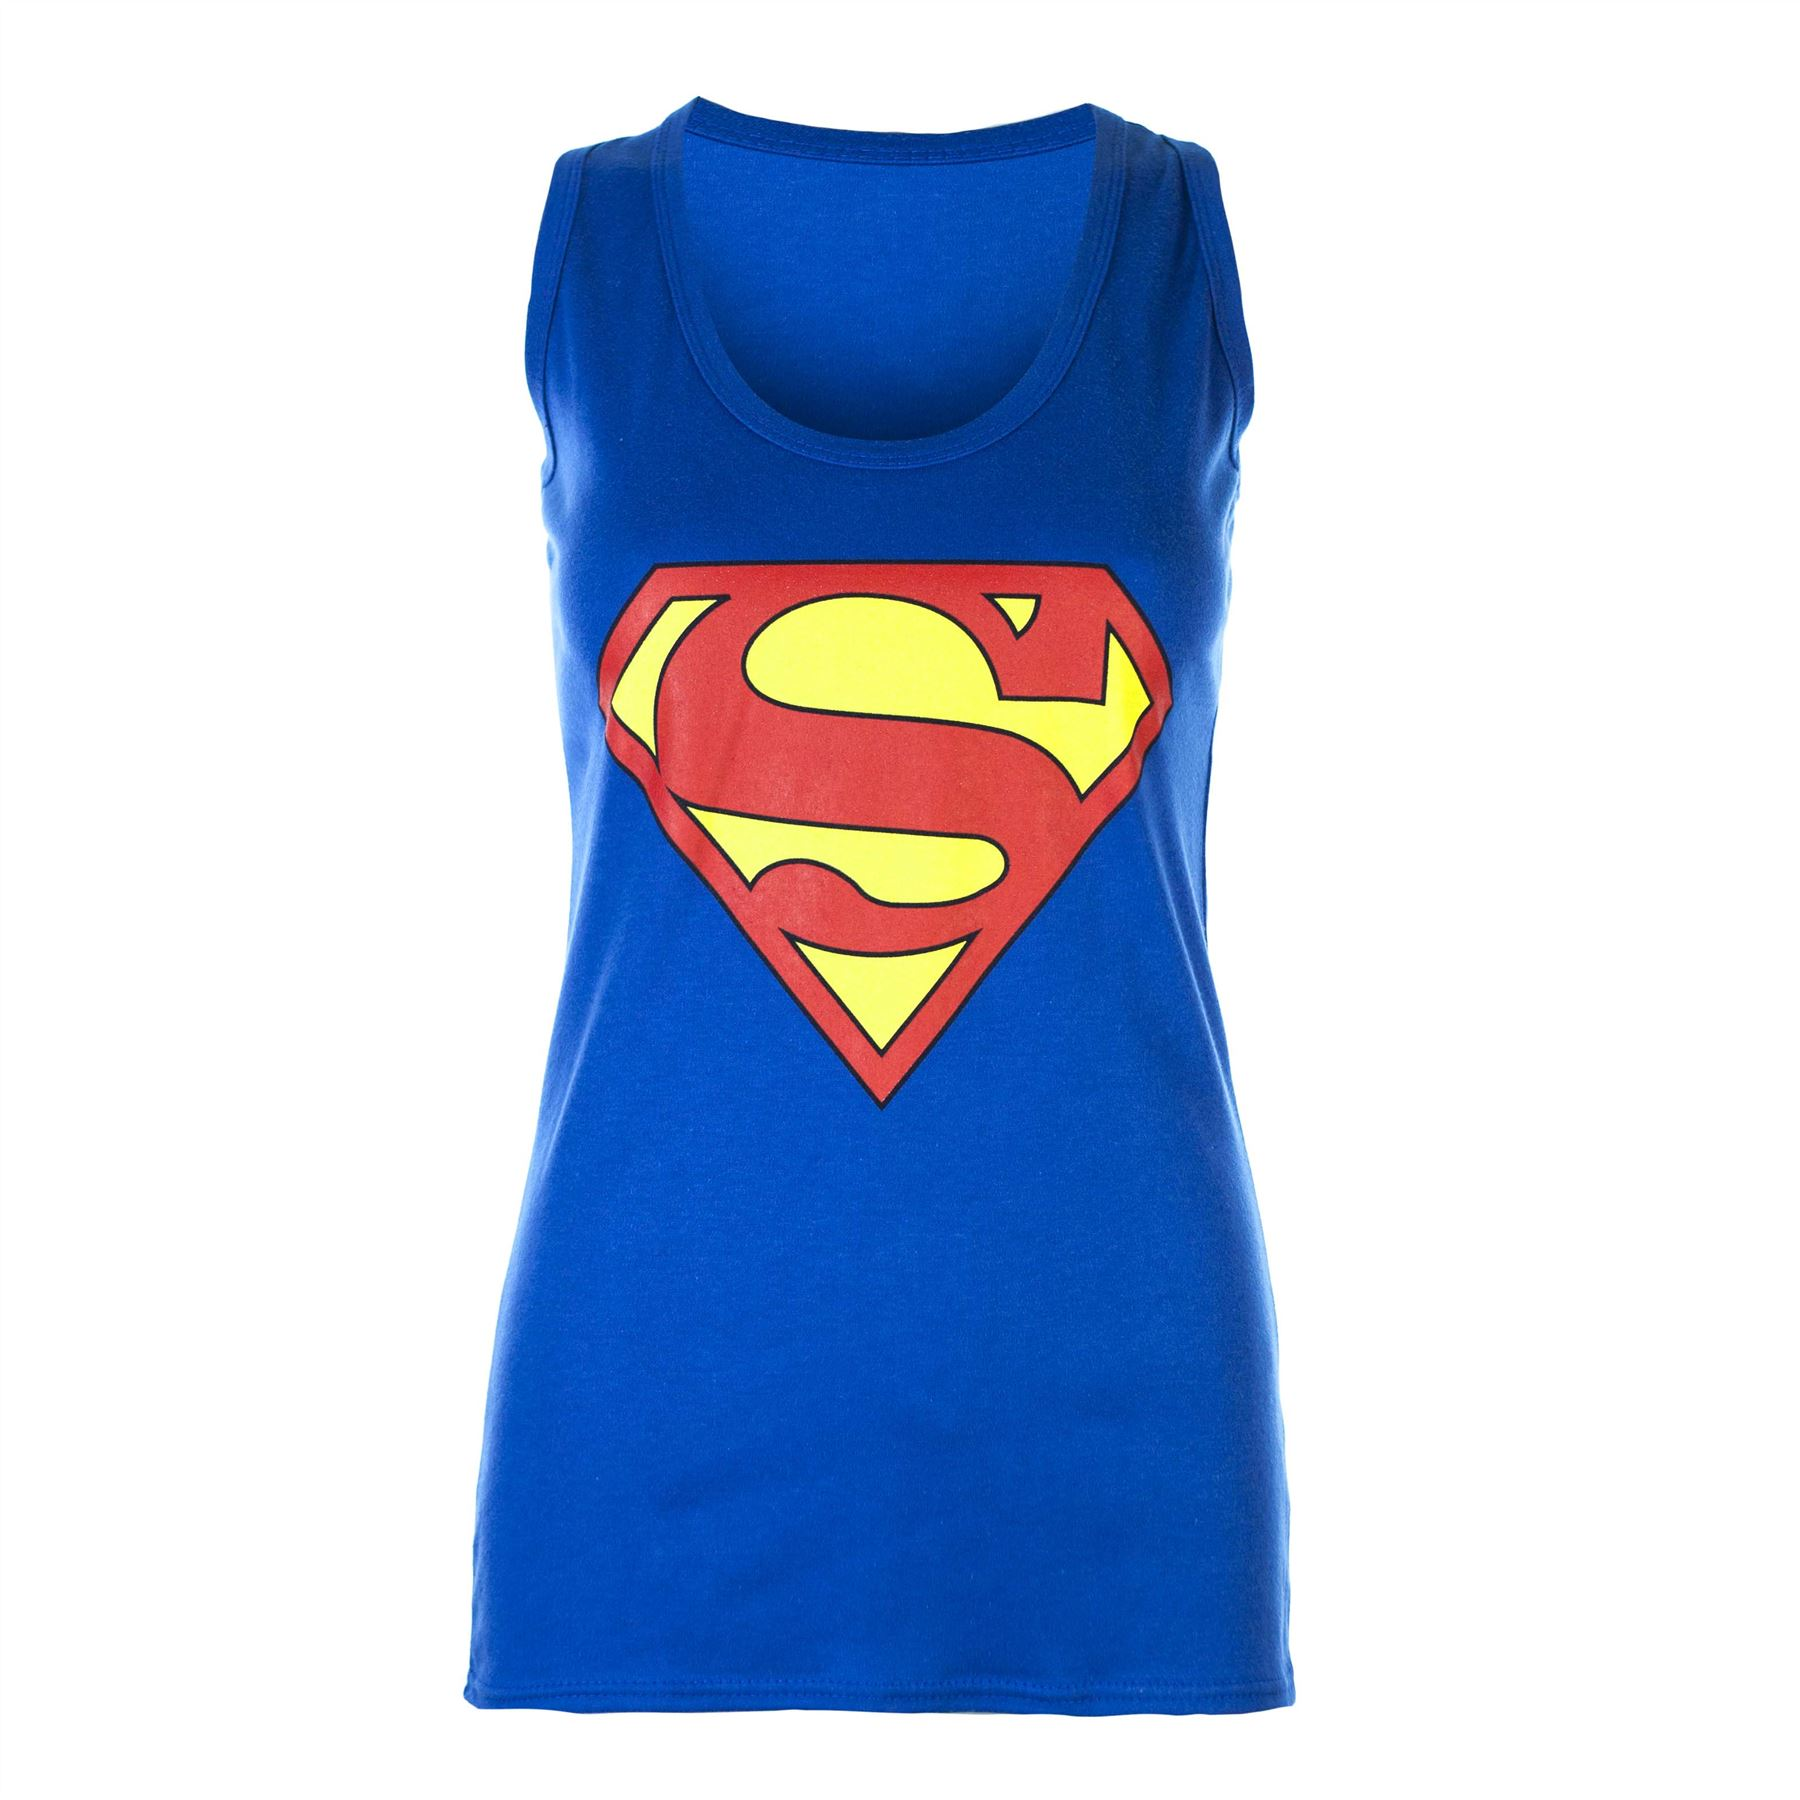 sleeveless muscle racer back top ladies superman batman t shirt vest. Black Bedroom Furniture Sets. Home Design Ideas